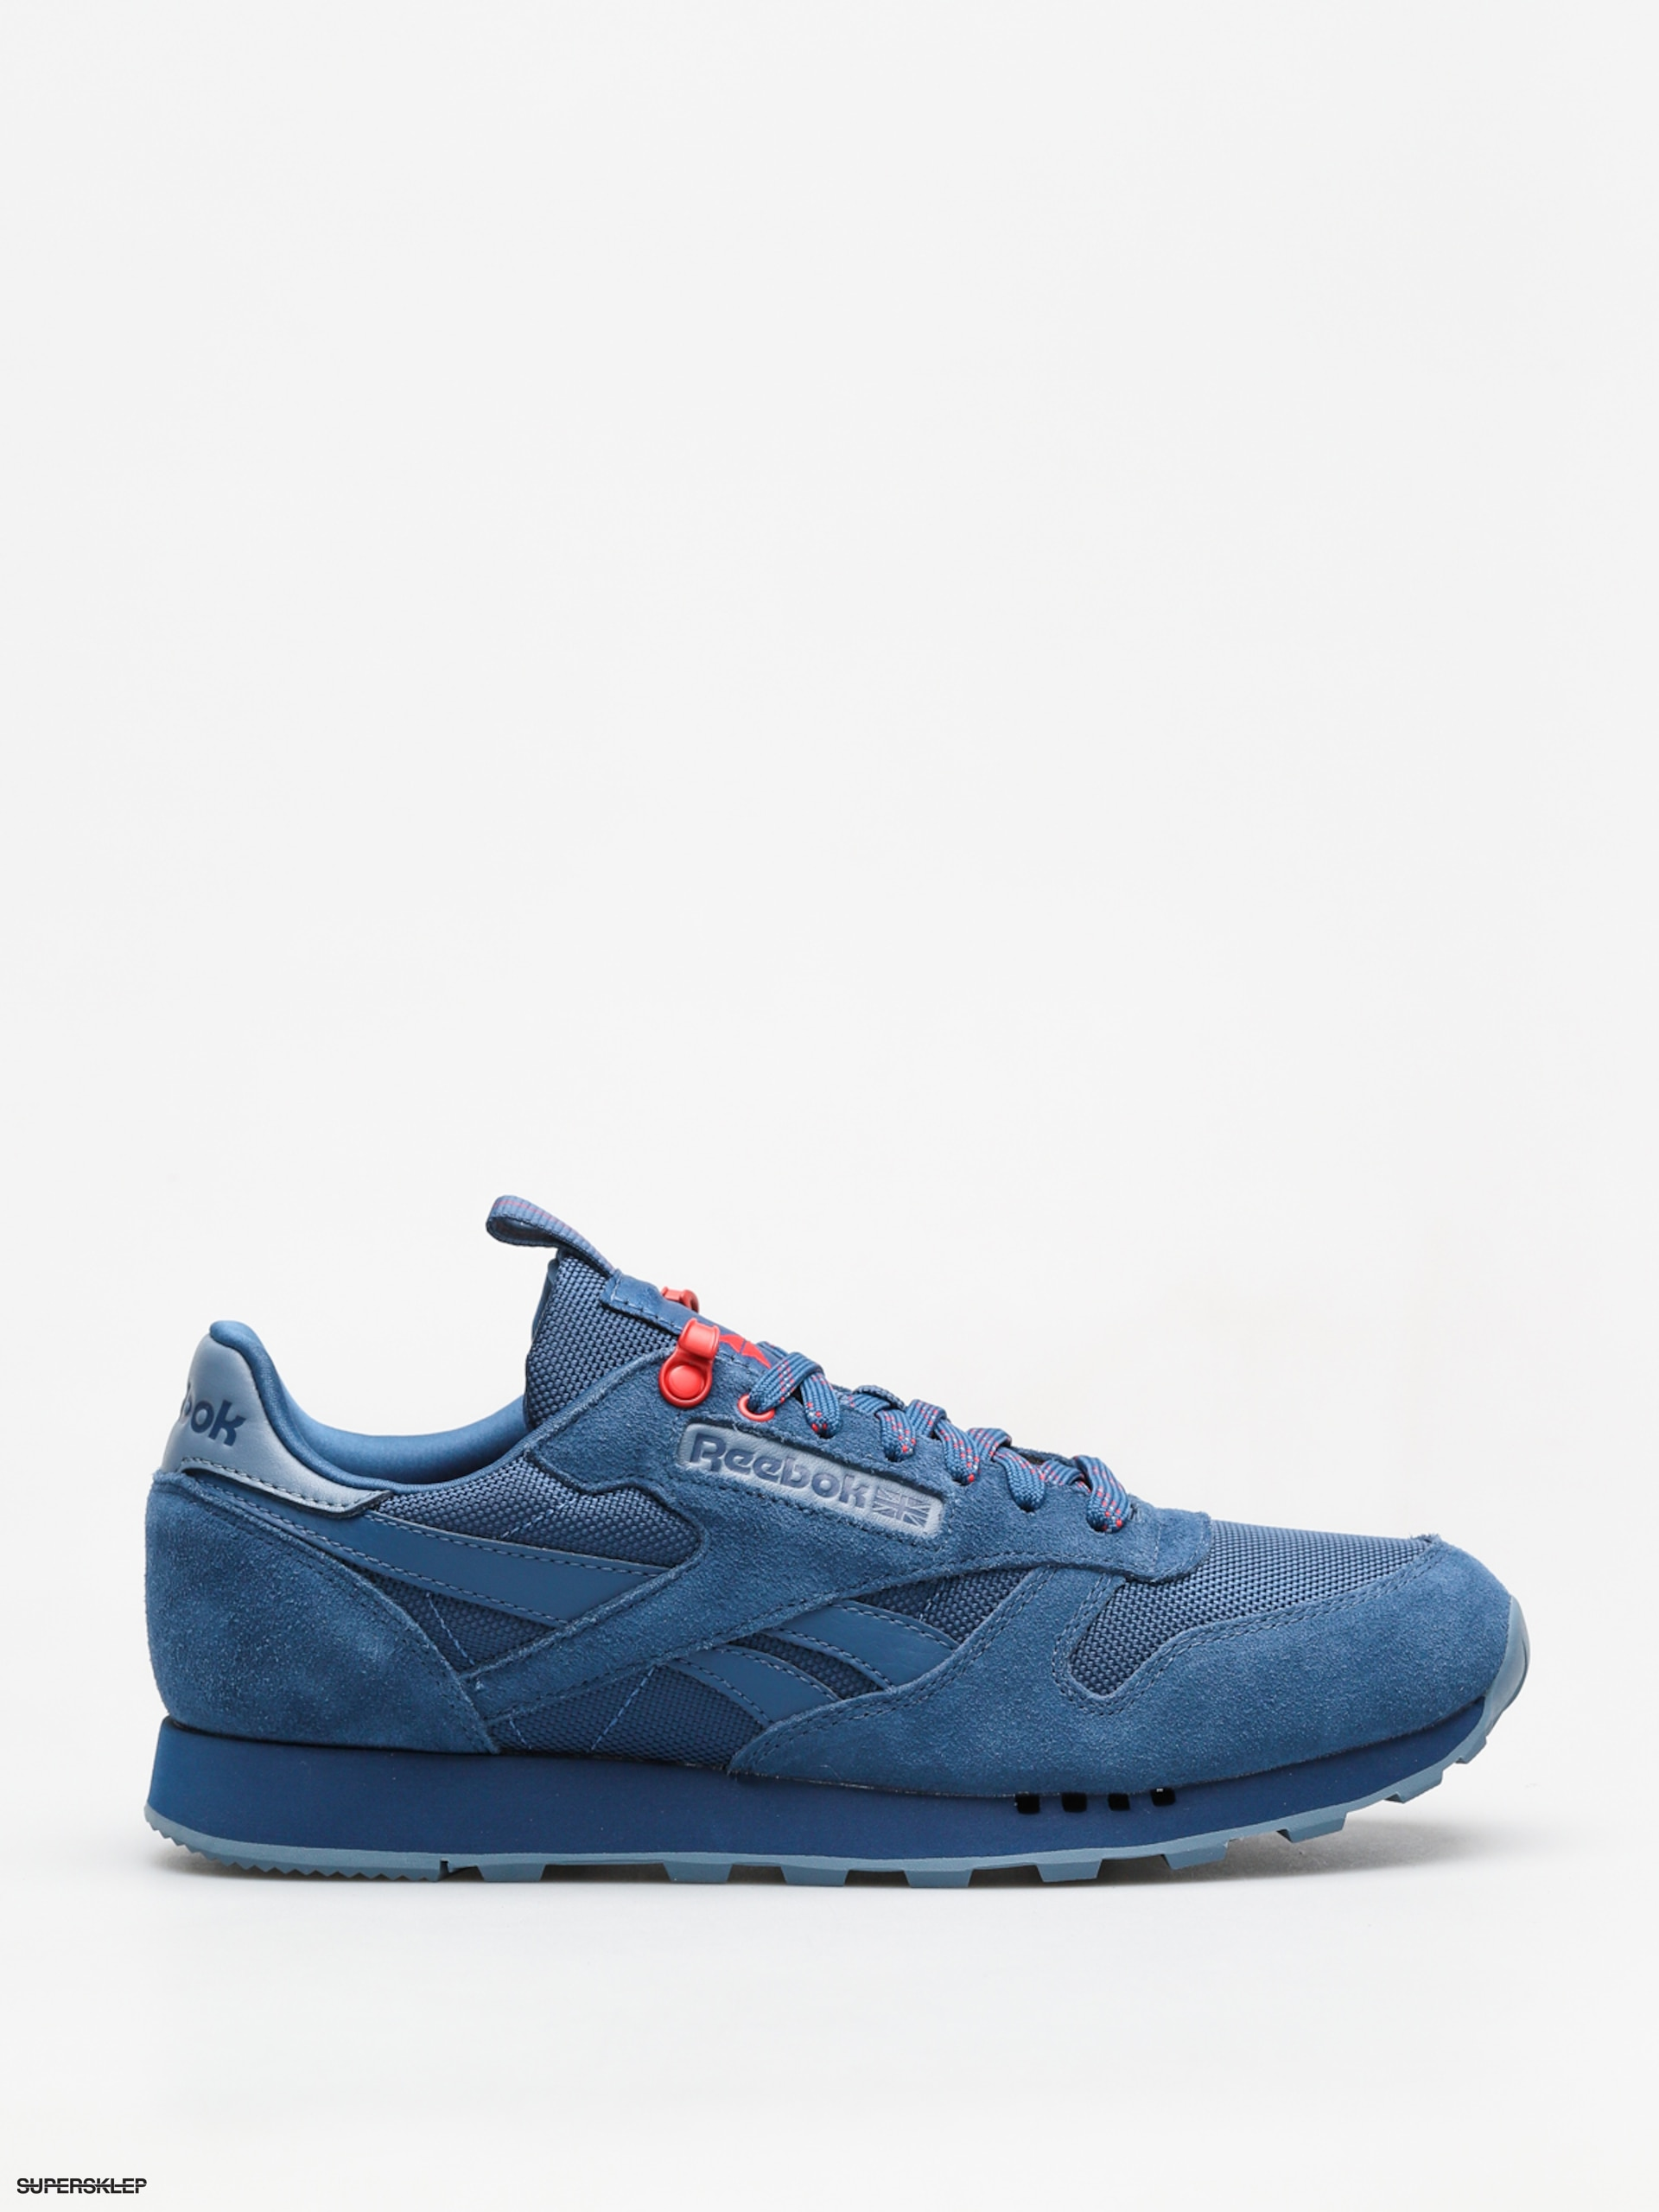 Topánky Reebok Cl Leather Explore (bunker blue blue slate primal red) 9bb40a73124